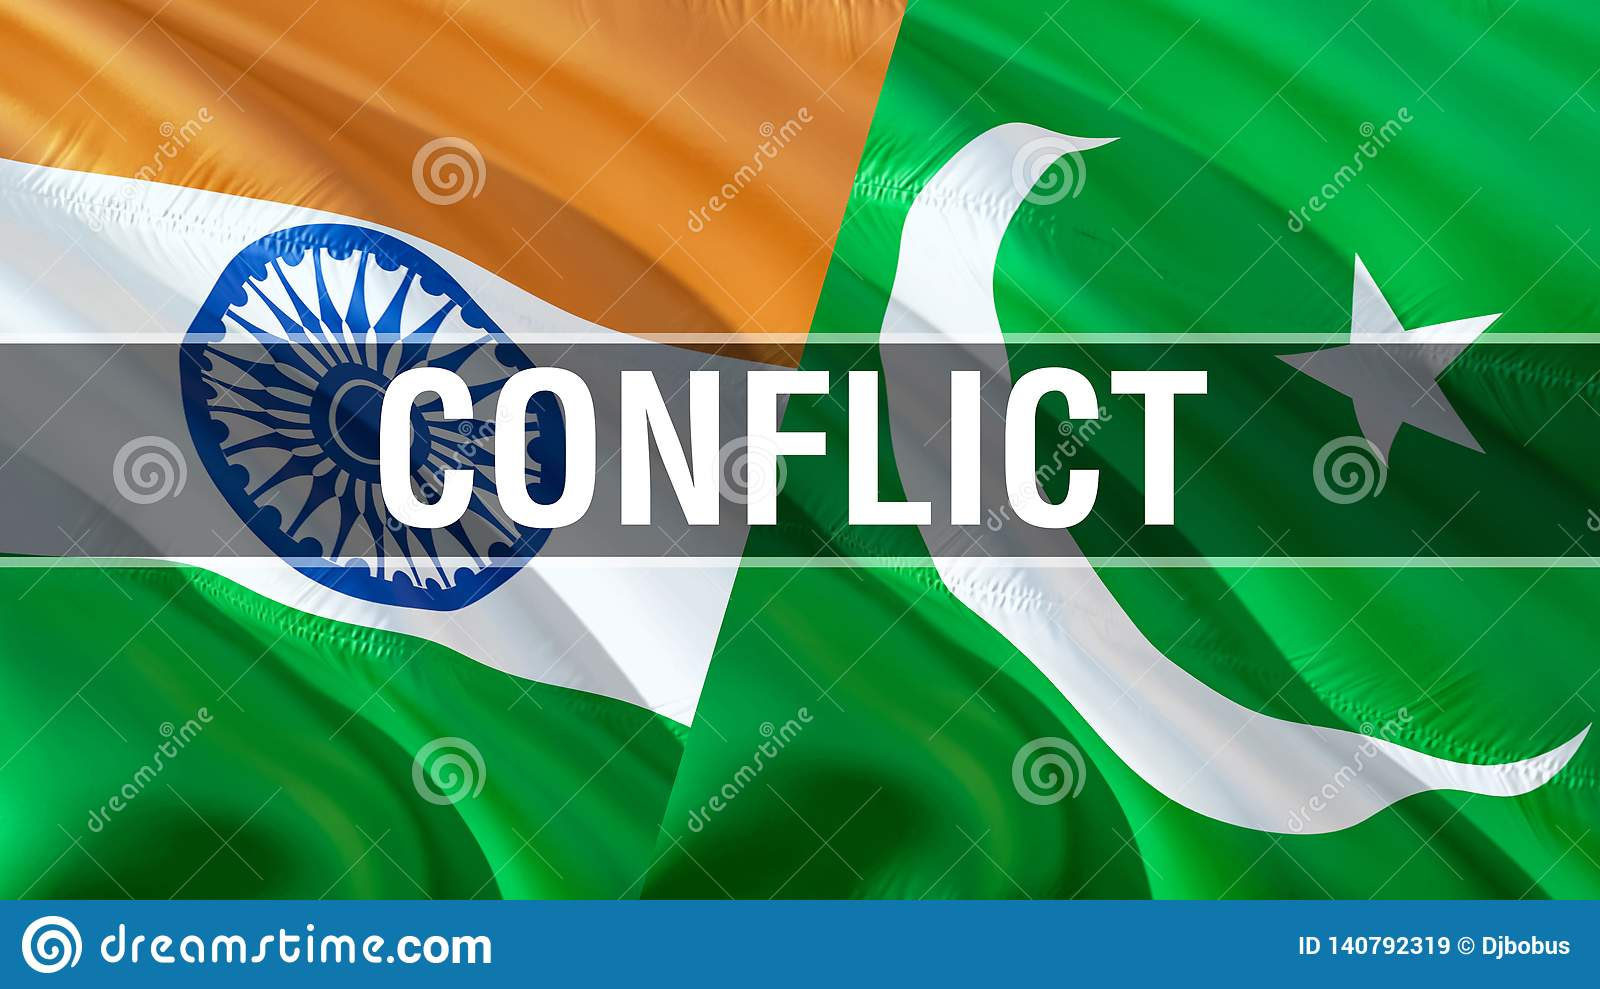 Conflict on Pakistan and India flags. Waving flag design,3D rendering. Pakistan India flag picture, wallpaper image. Kashmir